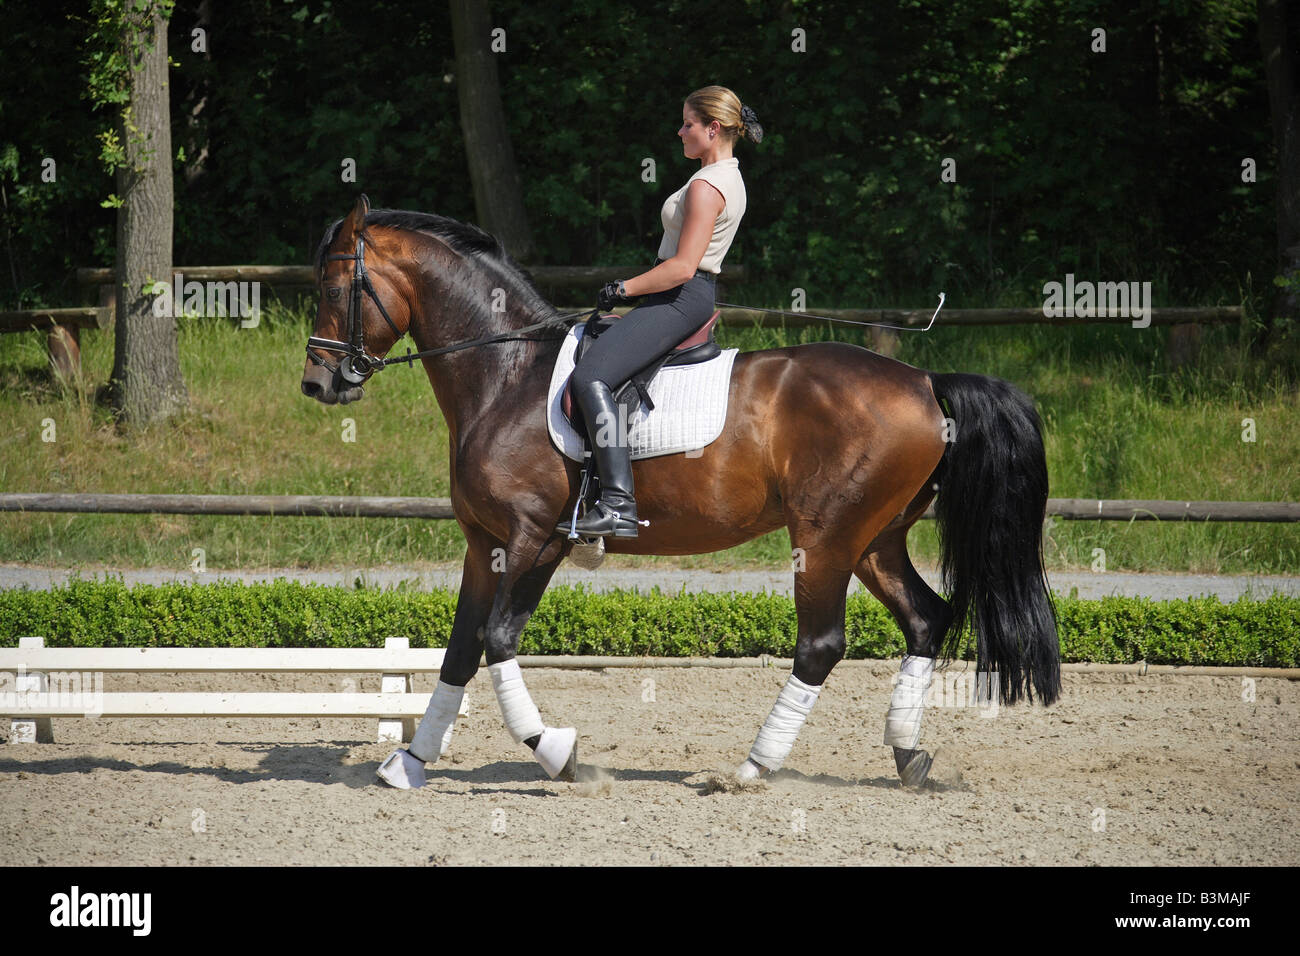 Oldenburg Horse with horsewoman - rein-back - Stock Image